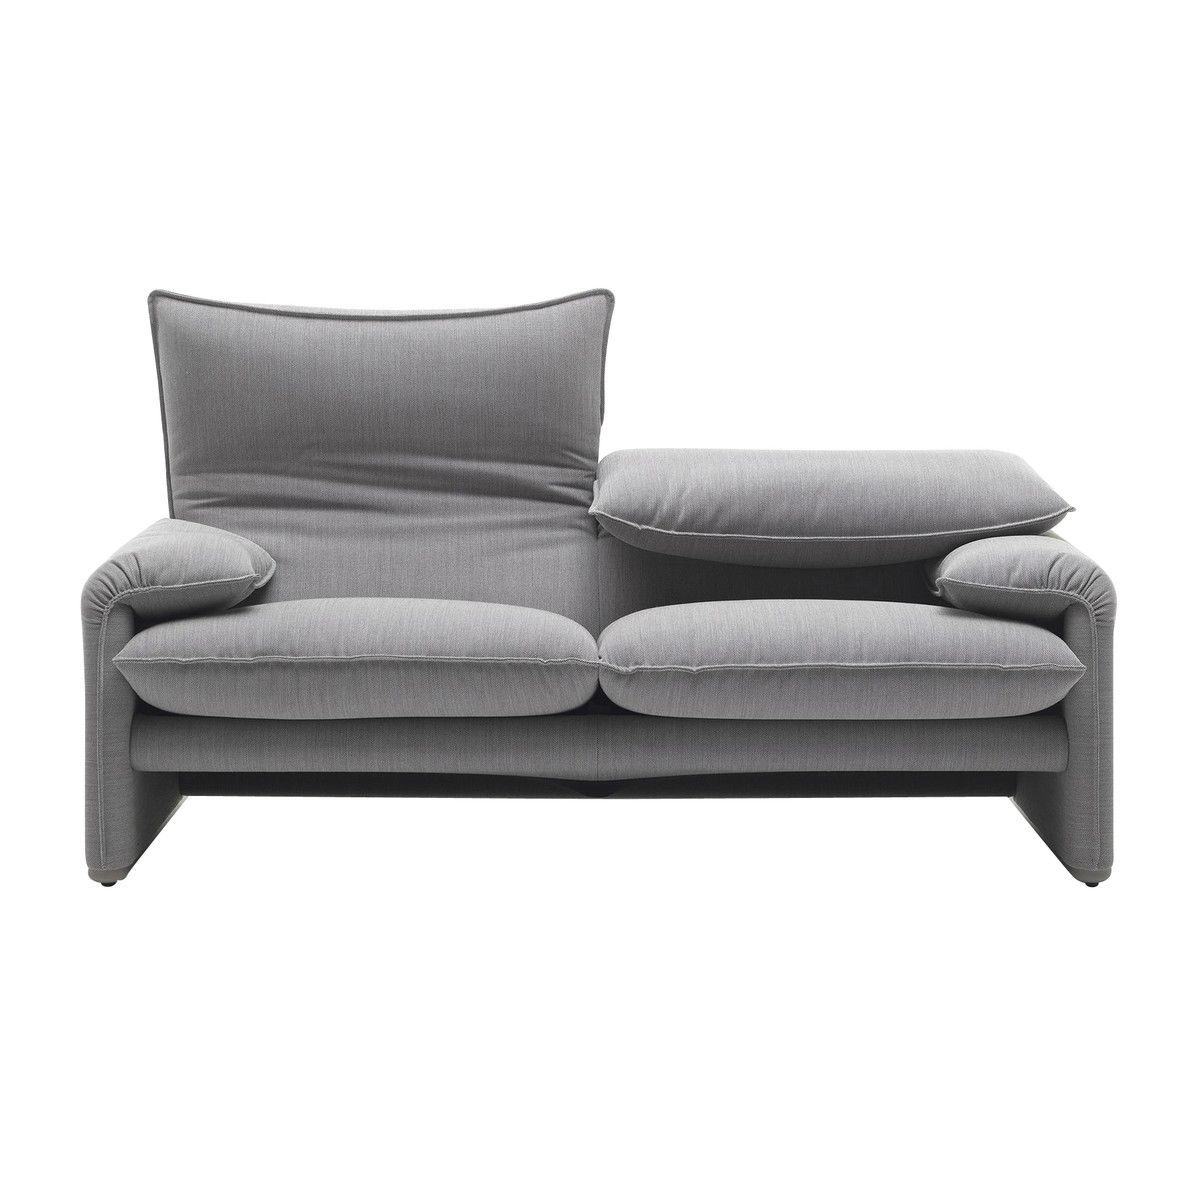 maralunga 40 2 seater sofa 190x86cm cassina. Black Bedroom Furniture Sets. Home Design Ideas